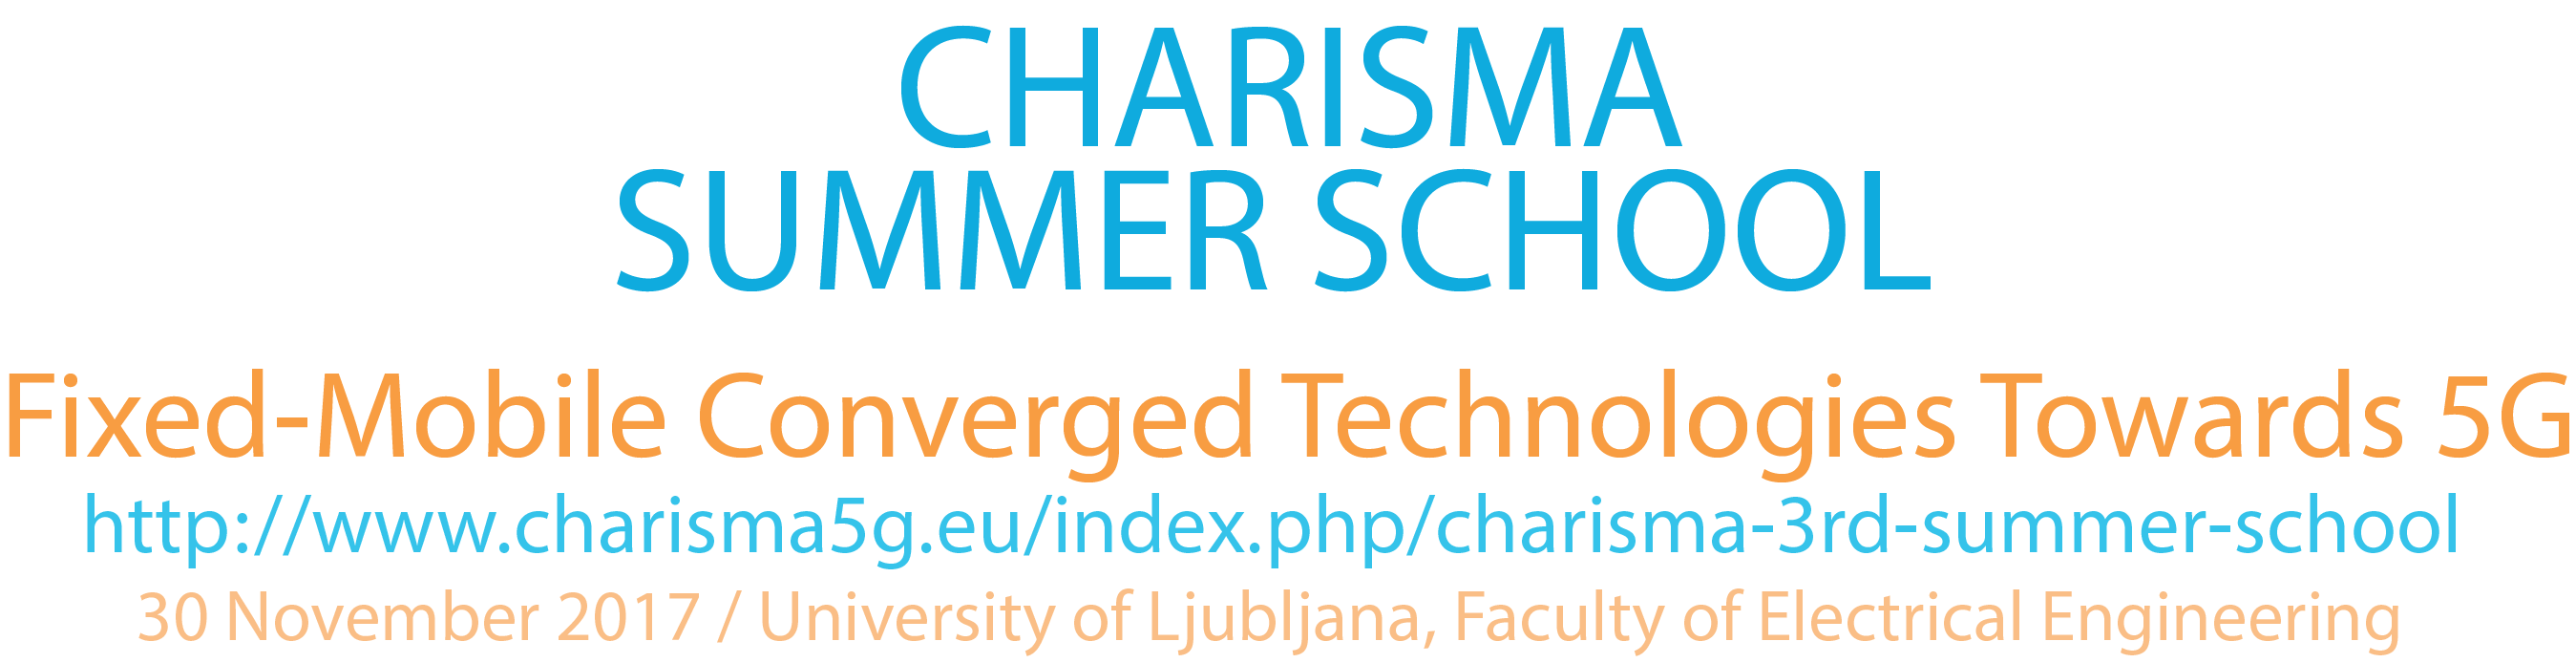 "CHARISMA Summer School ""Fixed-Mobile Convergence in 5G Networking"""